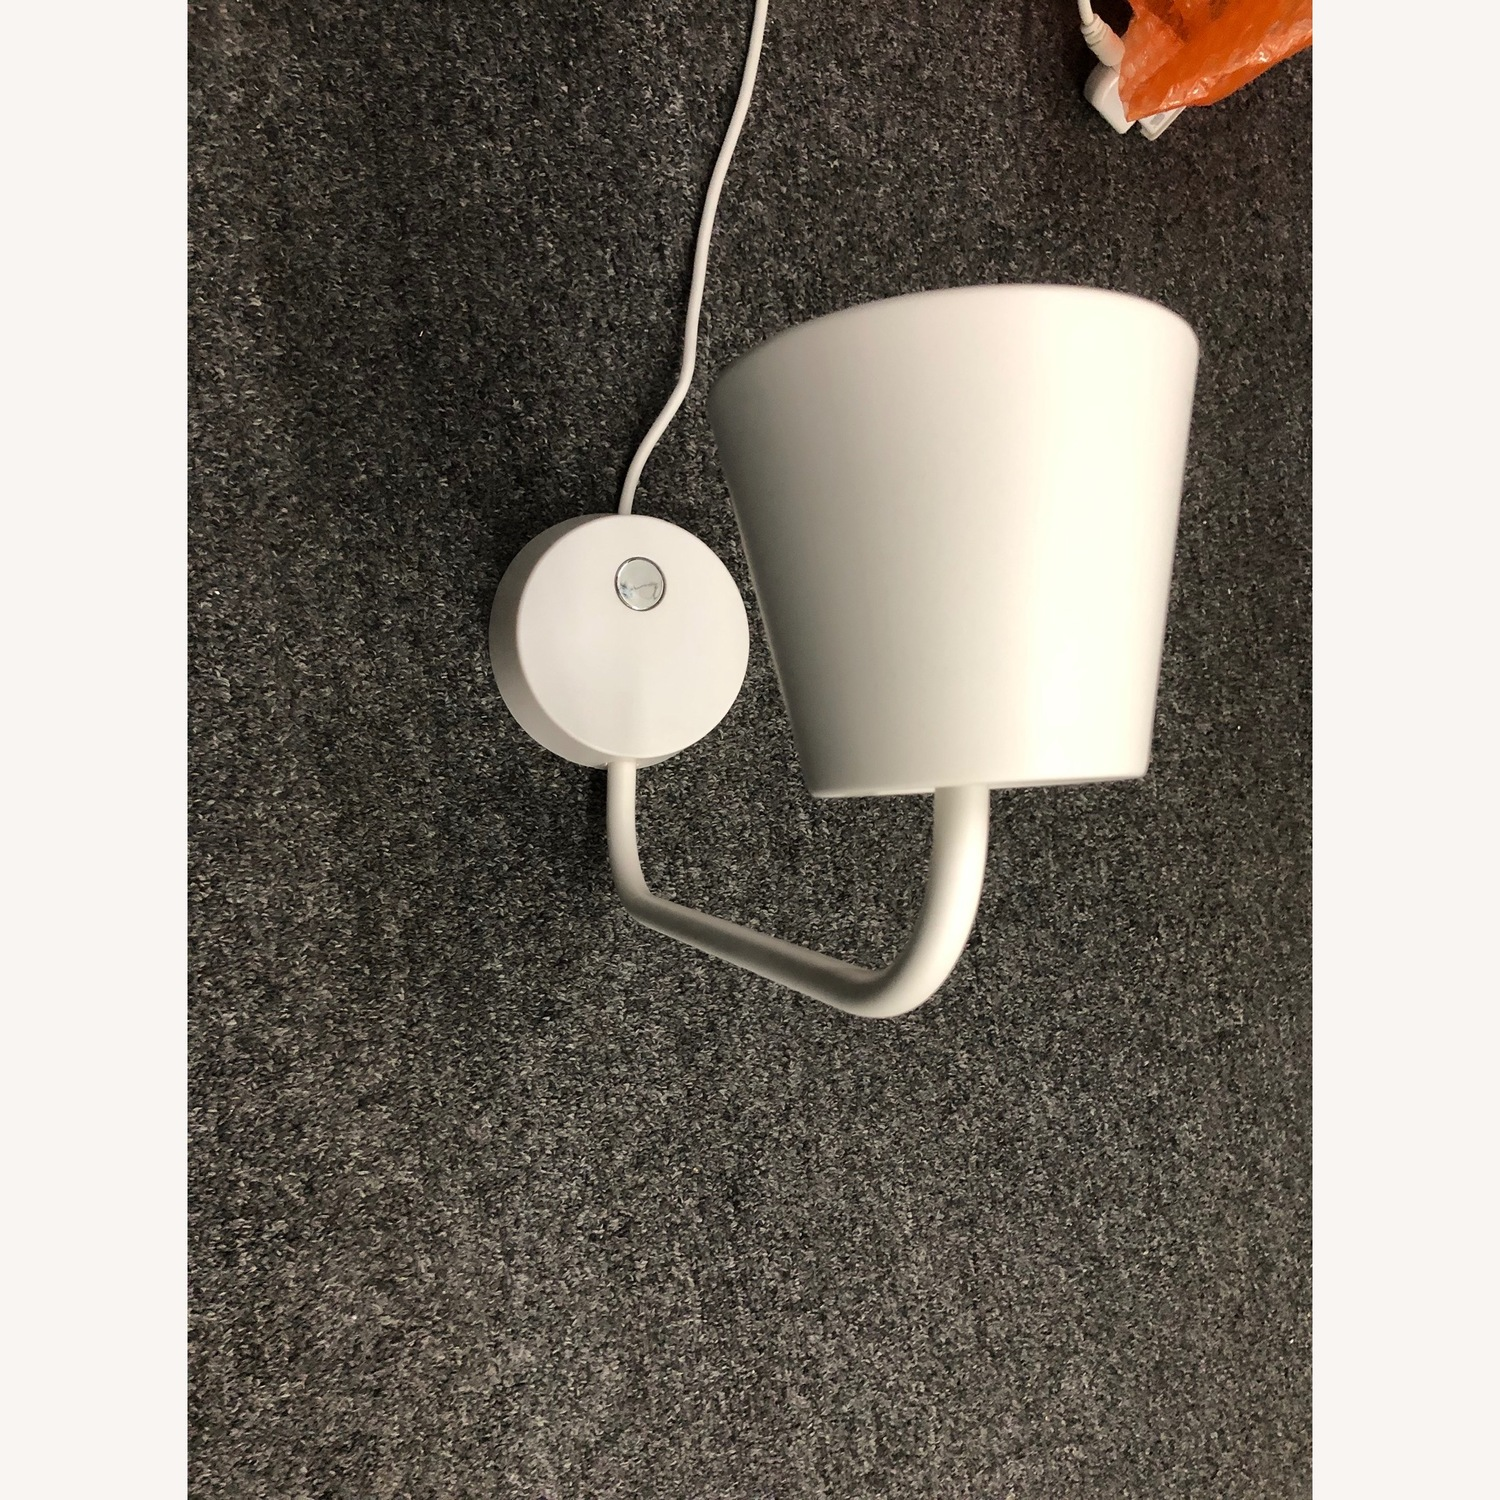 Ikea White Tisdag LED Wall Lamps